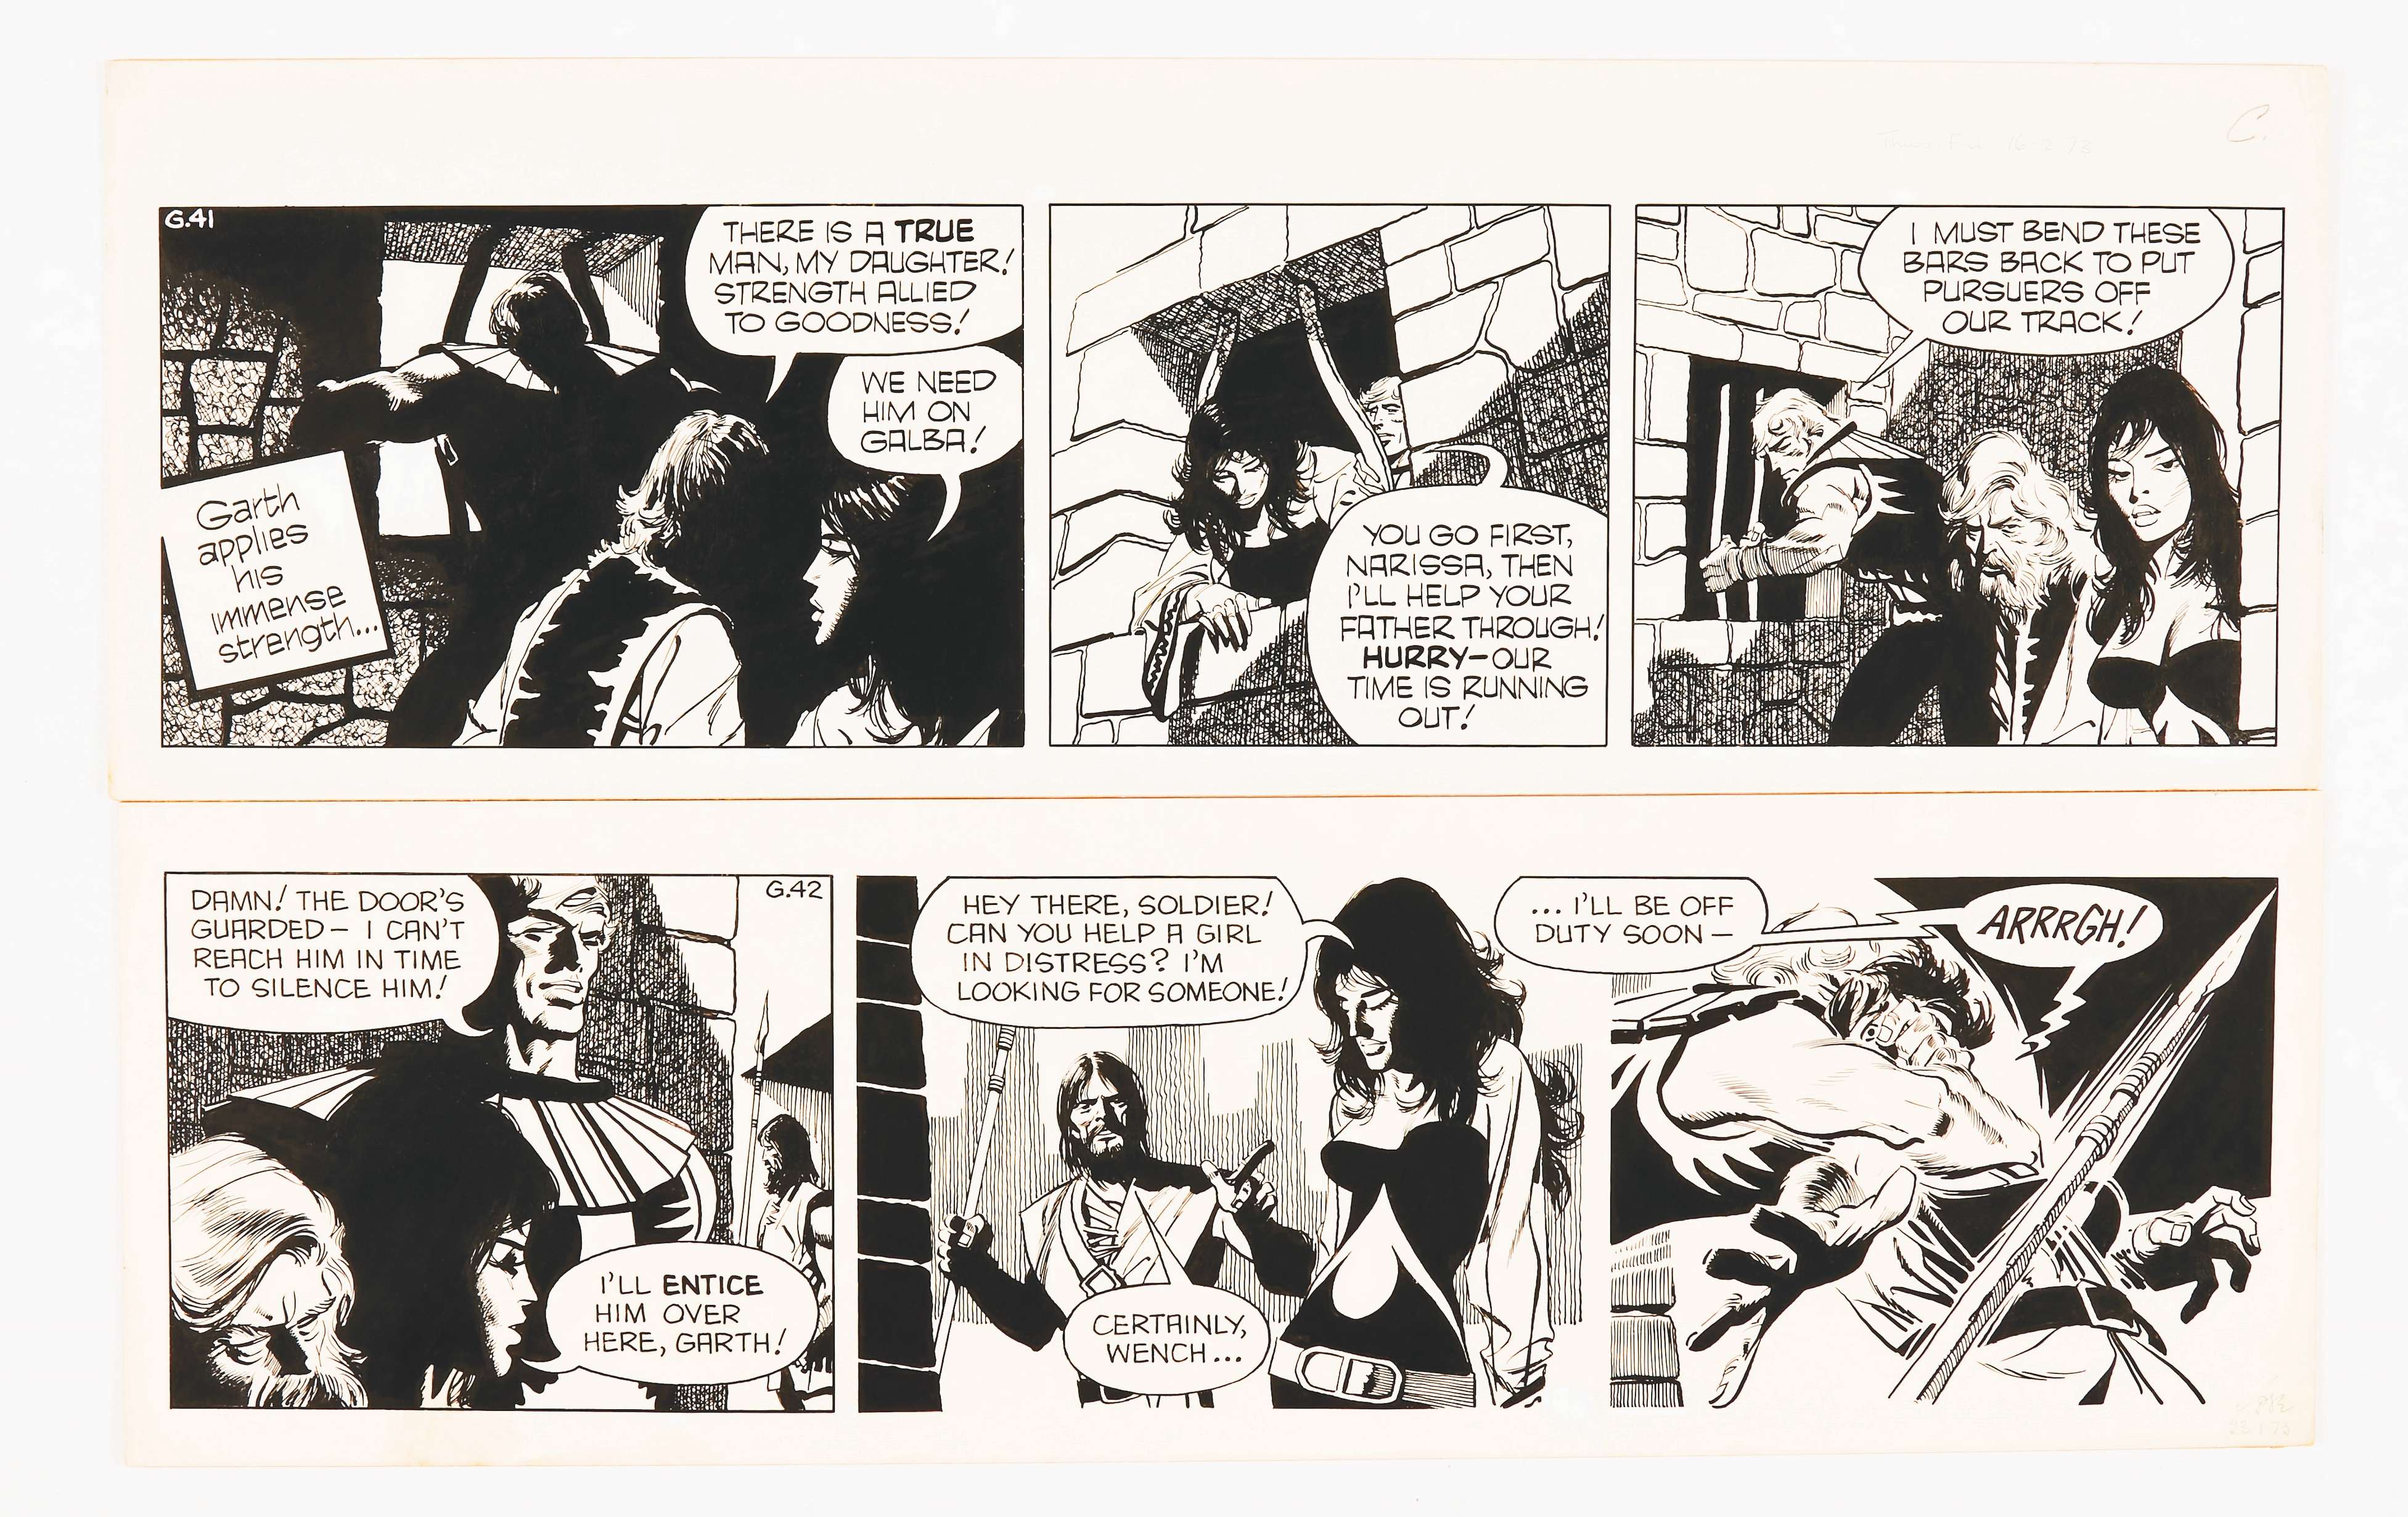 Garth: 'The Women of Galba' 2 original consecutive artworks (1973) by Frank Bellamy for the Daily